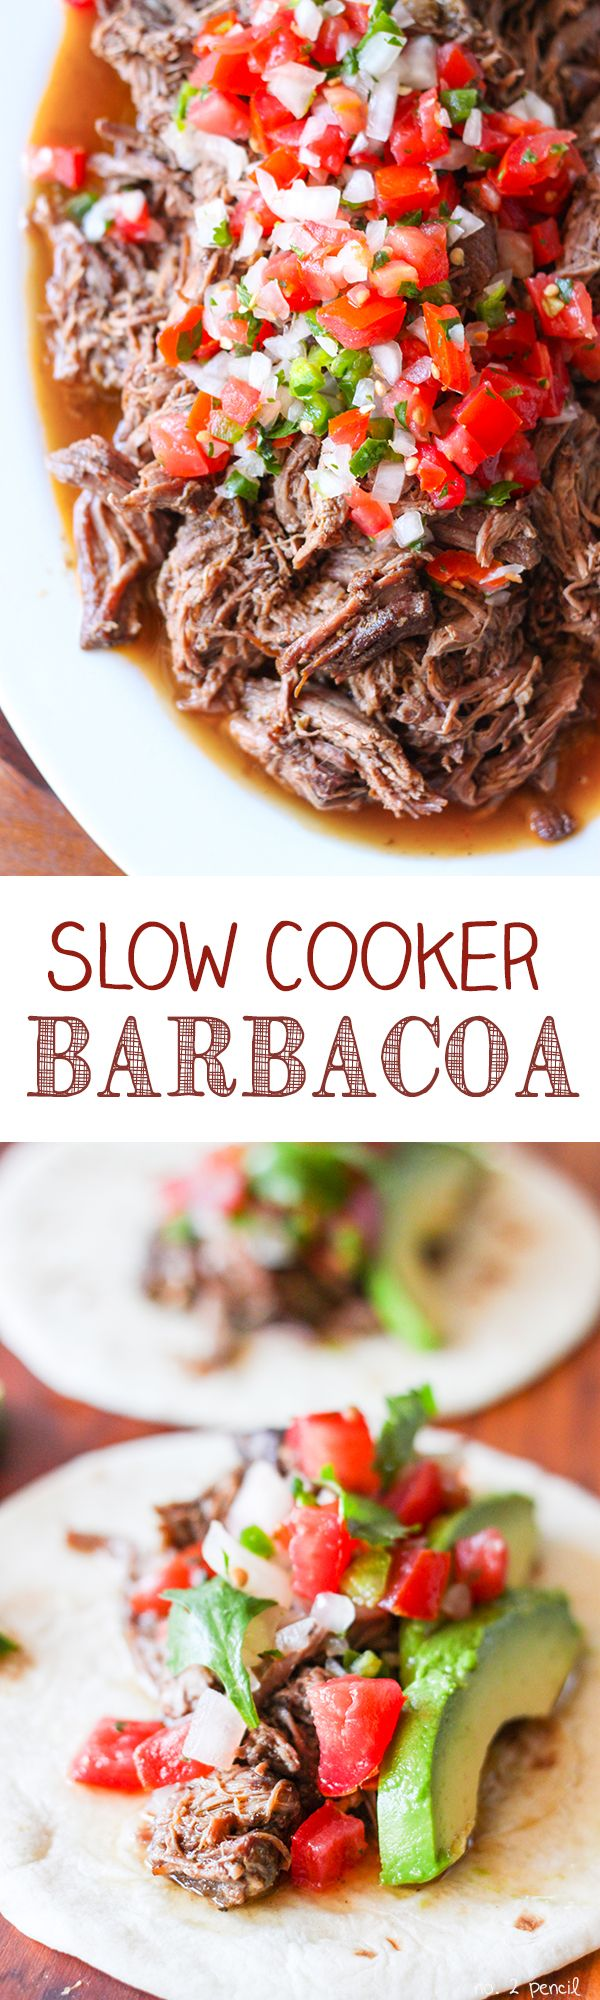 Slow Cooker Barbacoa Beef  Perfect on tacos, in burritos, burrito bowls or just as a main dish with rice and beans!